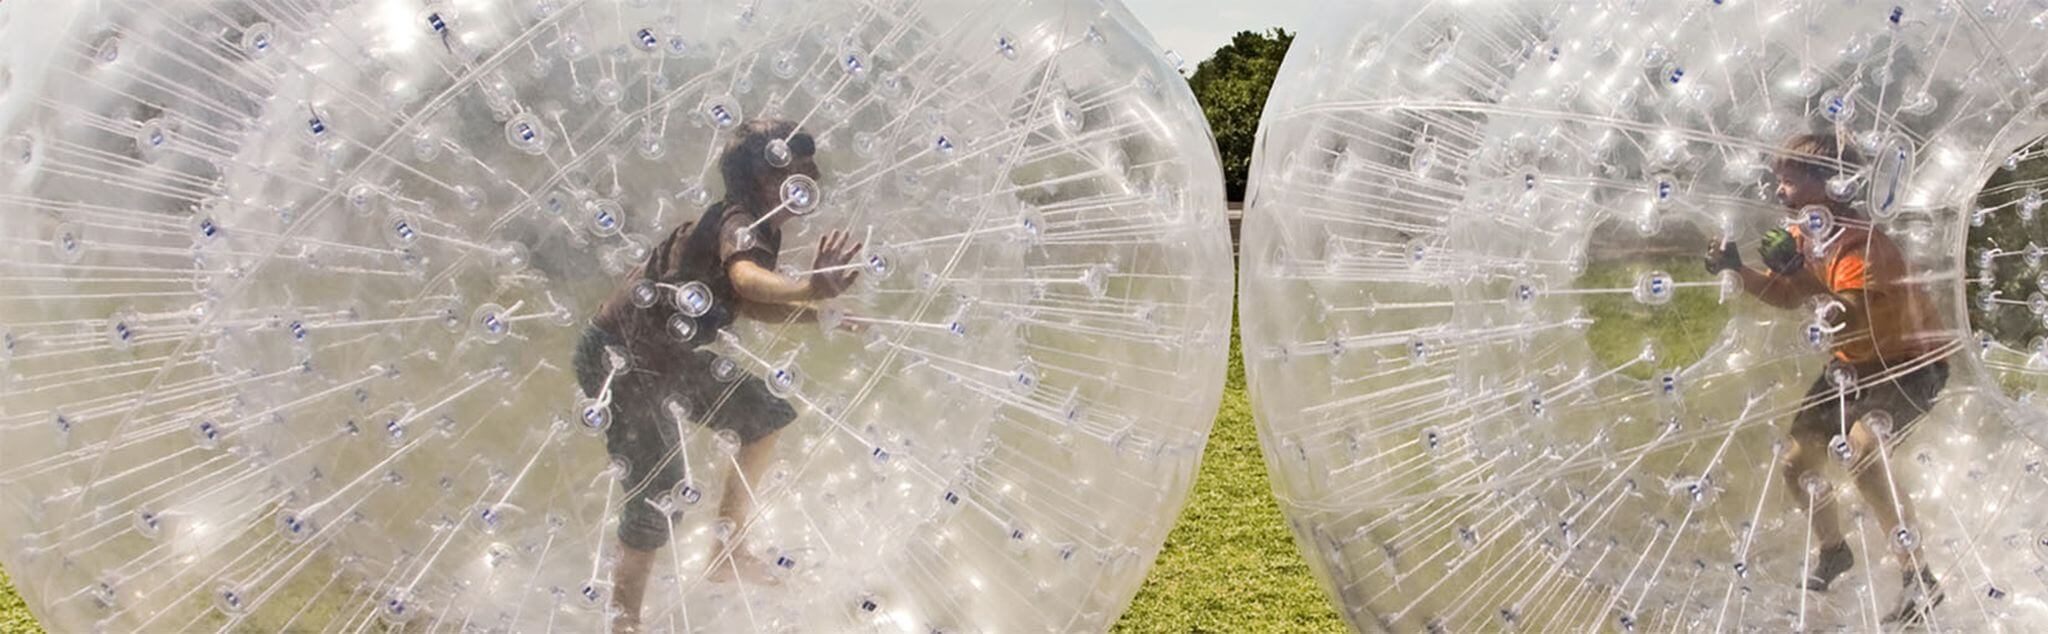 Bubble Football a Milano